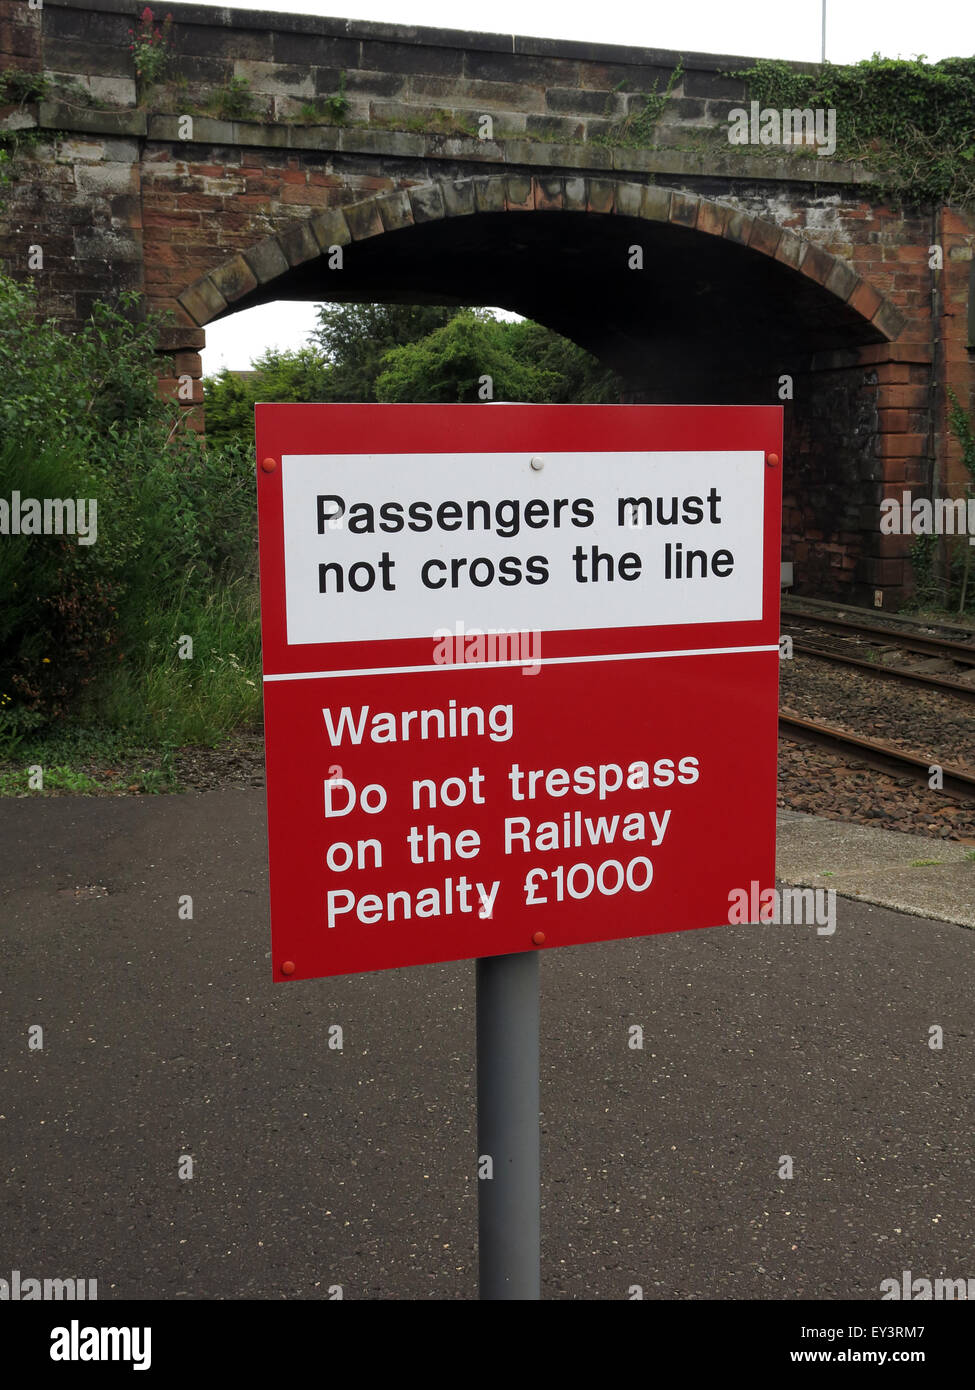 red,british rail,railtrack,rail,track,Scotrail,platform,Annan,station,warning,do not trespass,penalty,£1000,£1,000,England,English,Scottish,Scotland,bridge,safety,health,H&S,Health and Safety,privatised,franchise,Passengers must not cross the line,GoTonySmith,Buy Pictures of,Buy Images Of